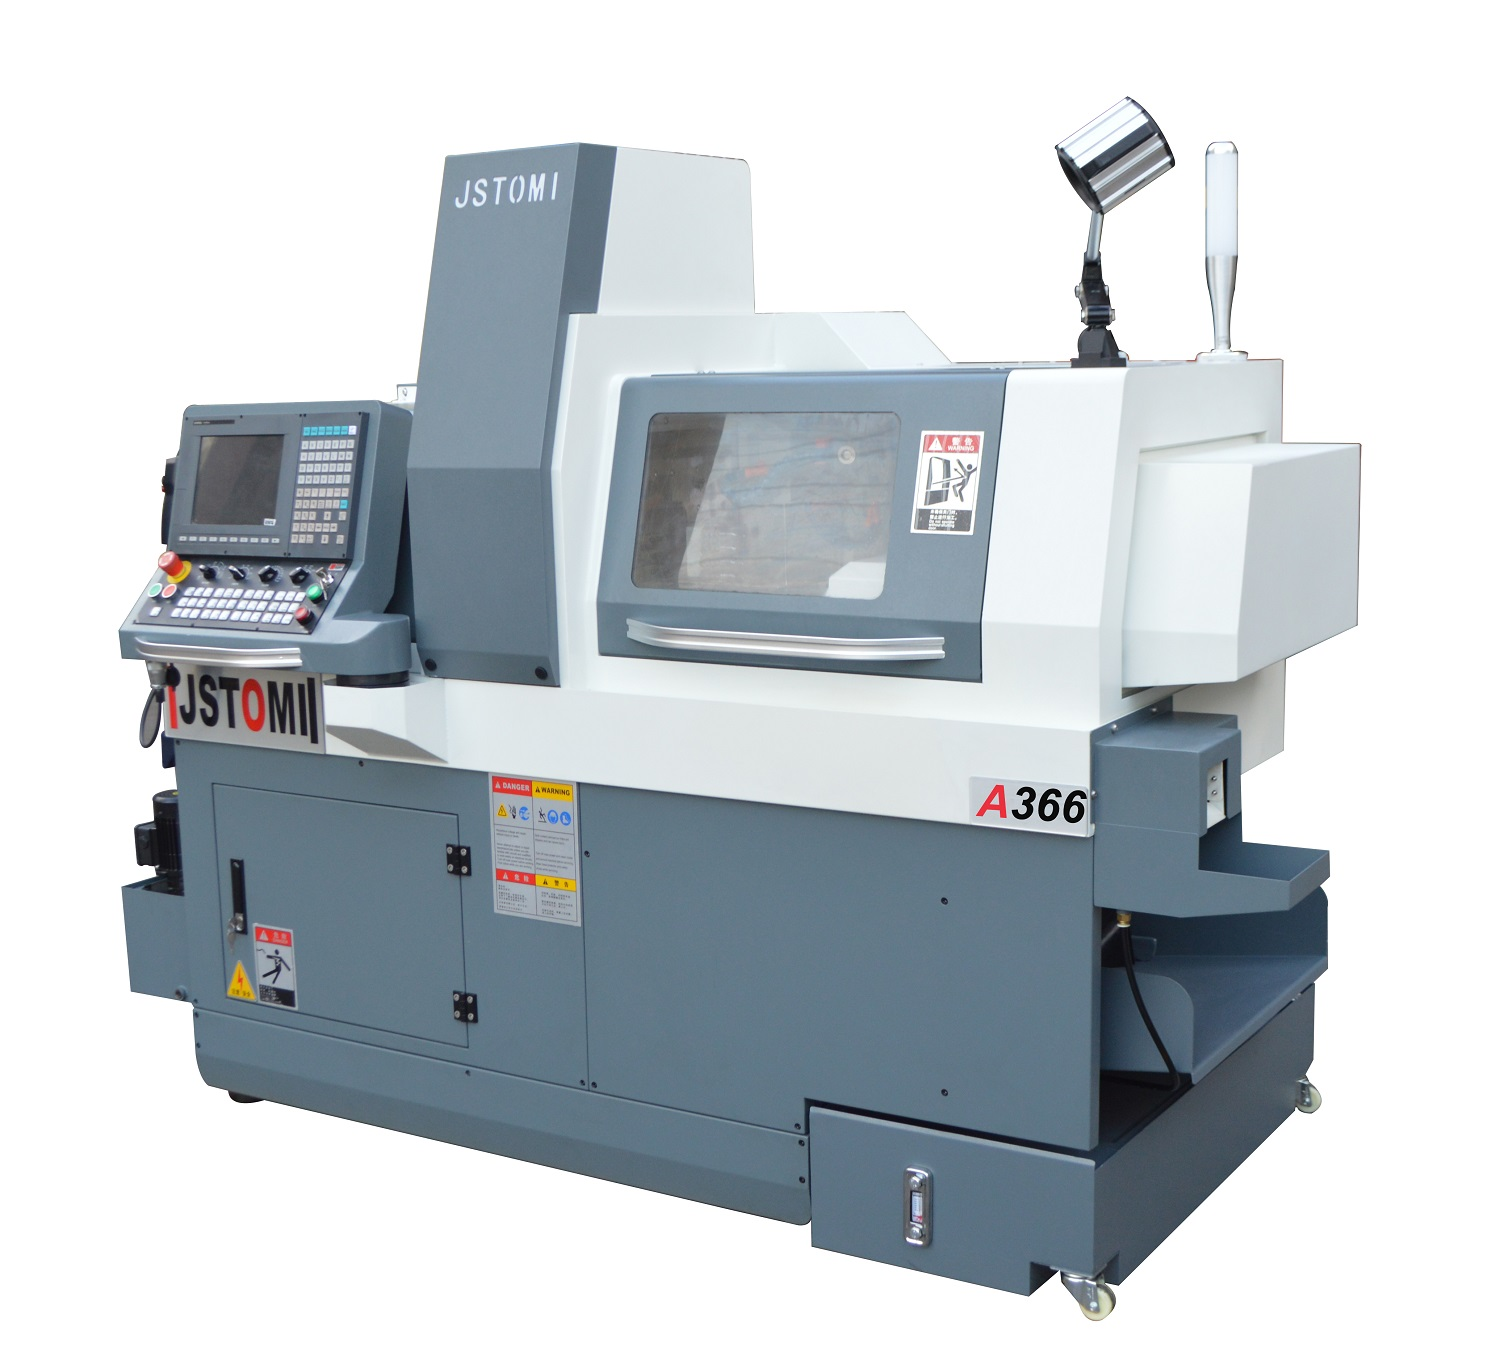 product-6 aixs big bore double mechanical spindle heavy cutting Swiss type lathe machine A366-JSWAY